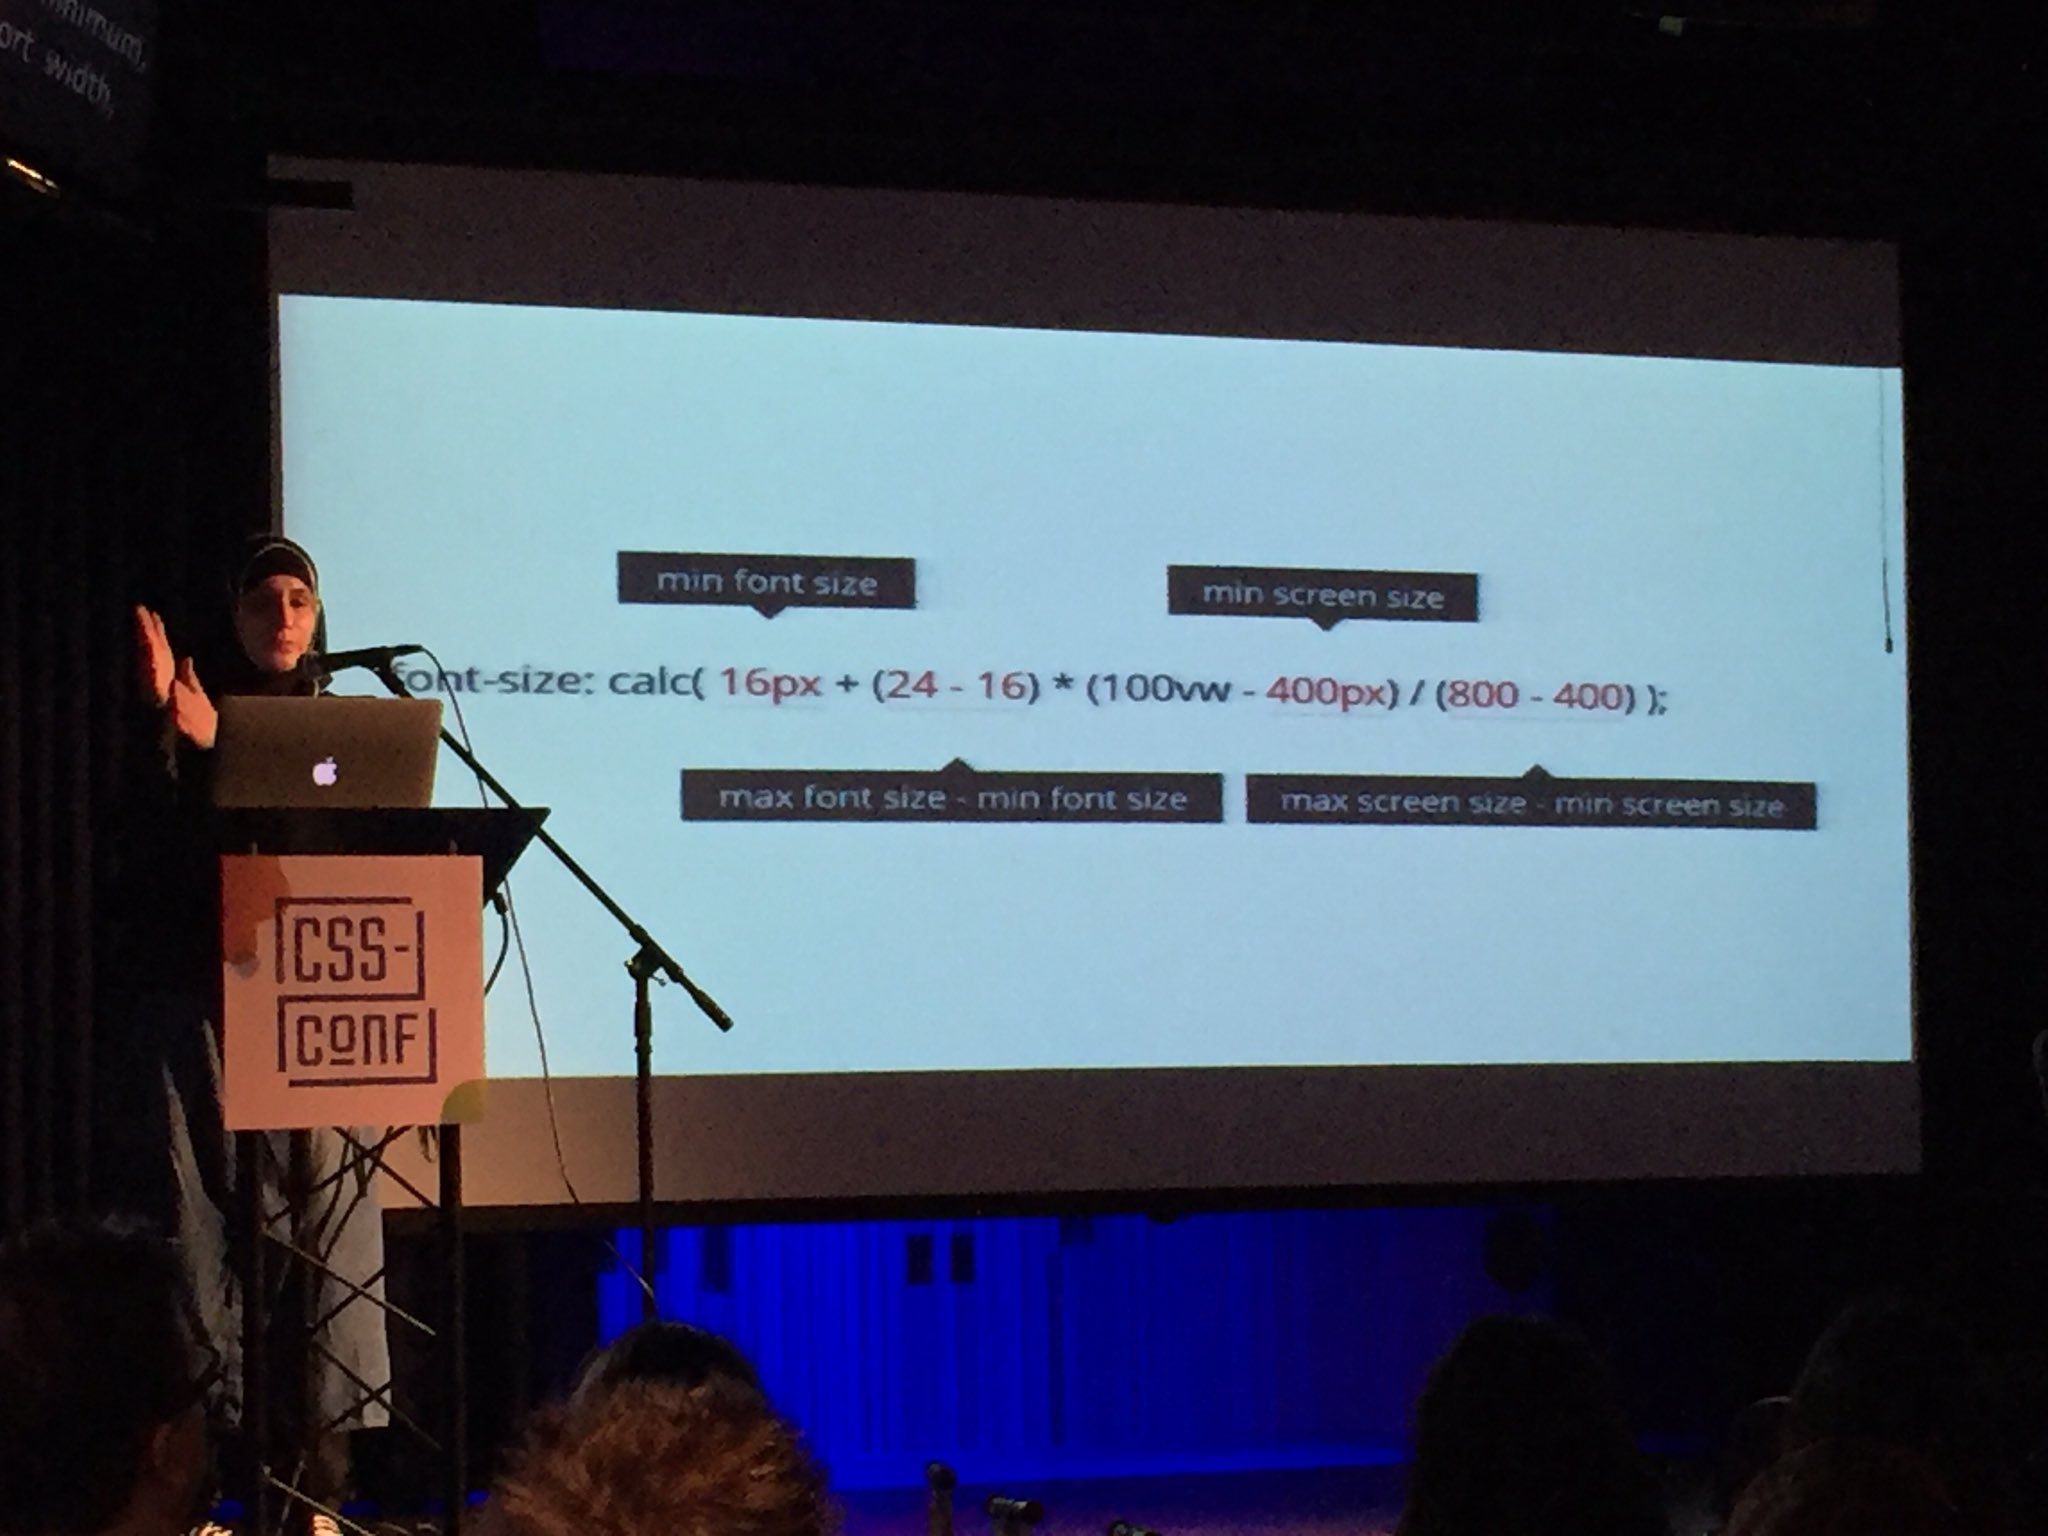 Math with @SaraSoueidan #cssconf https://t.co/imK4QvUoY7